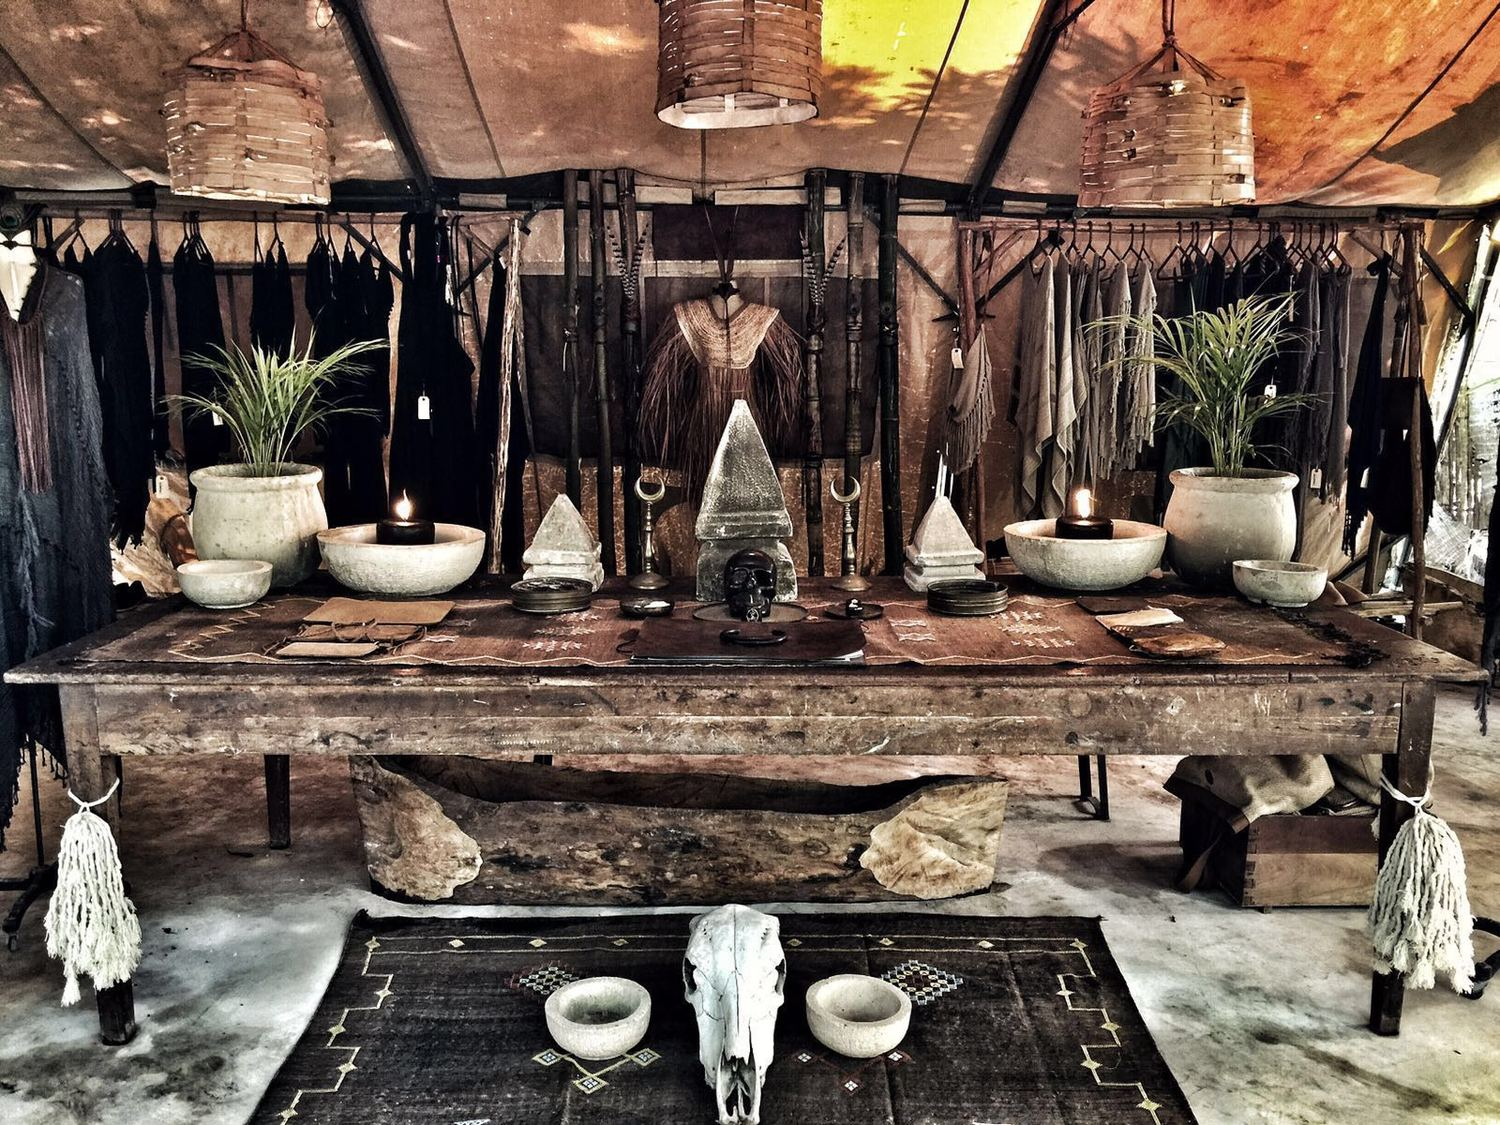 A tent displaying artefacts at Caravana, Tulum